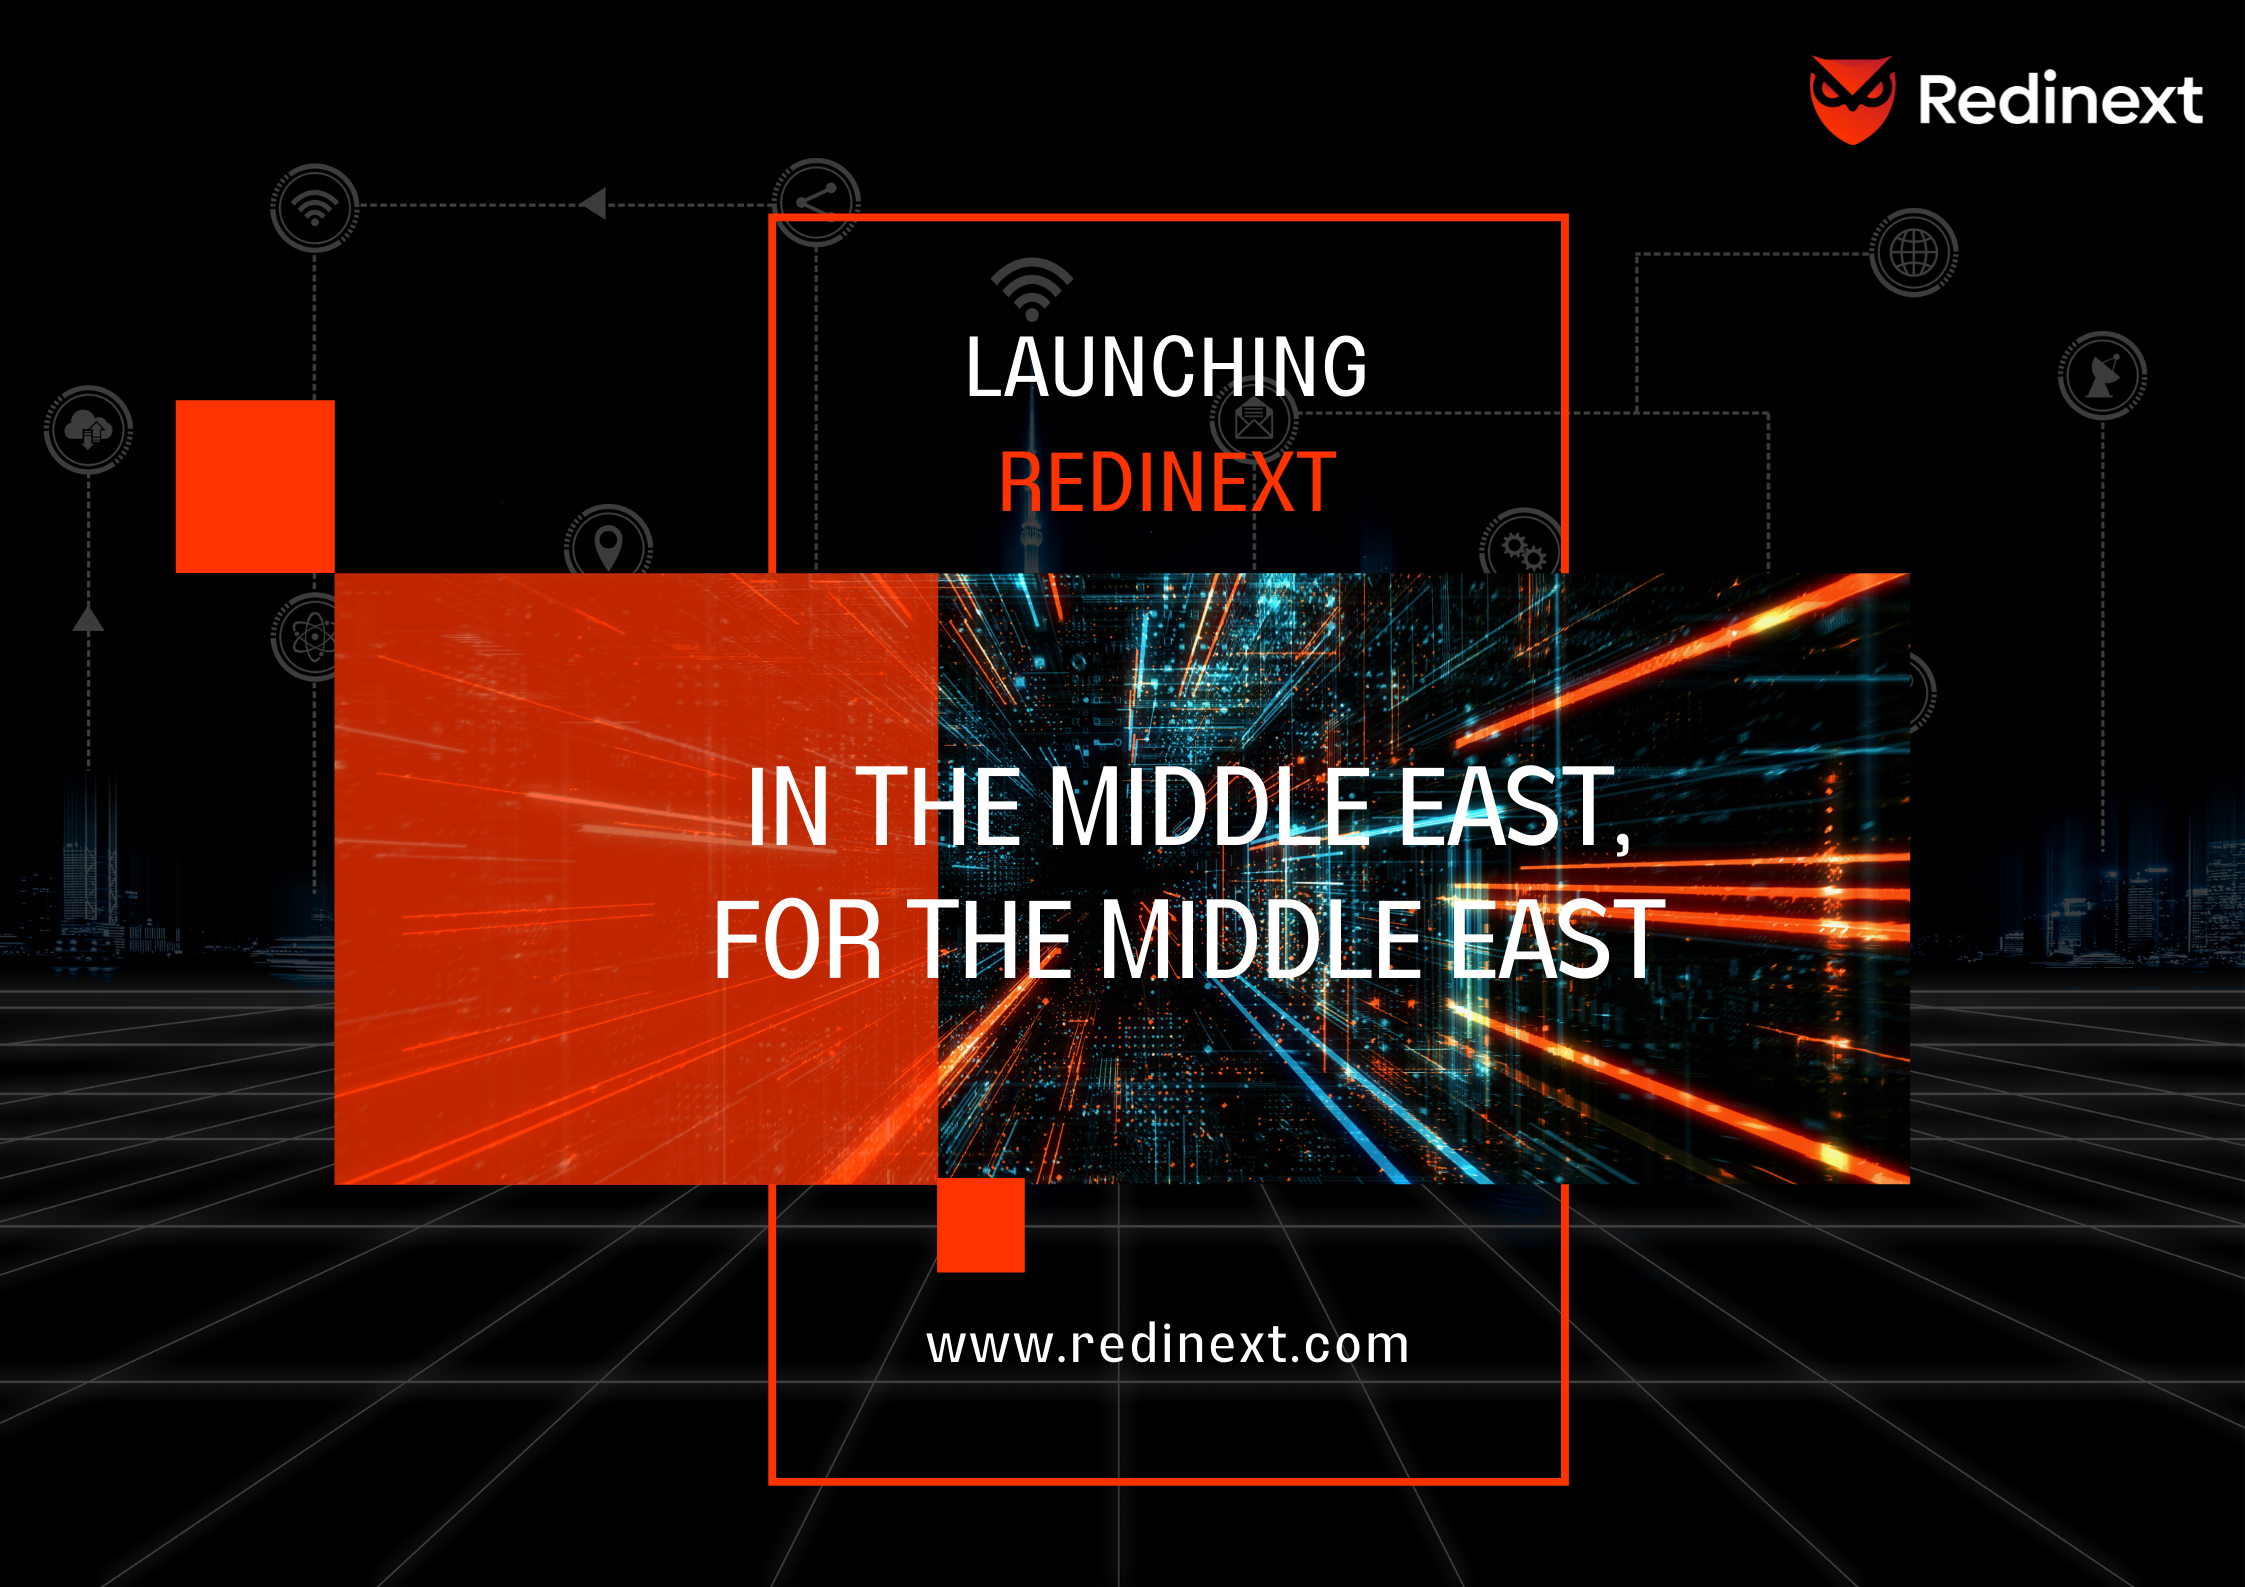 LAUNCHING REDINEXT IN THE MIDDLE EAST